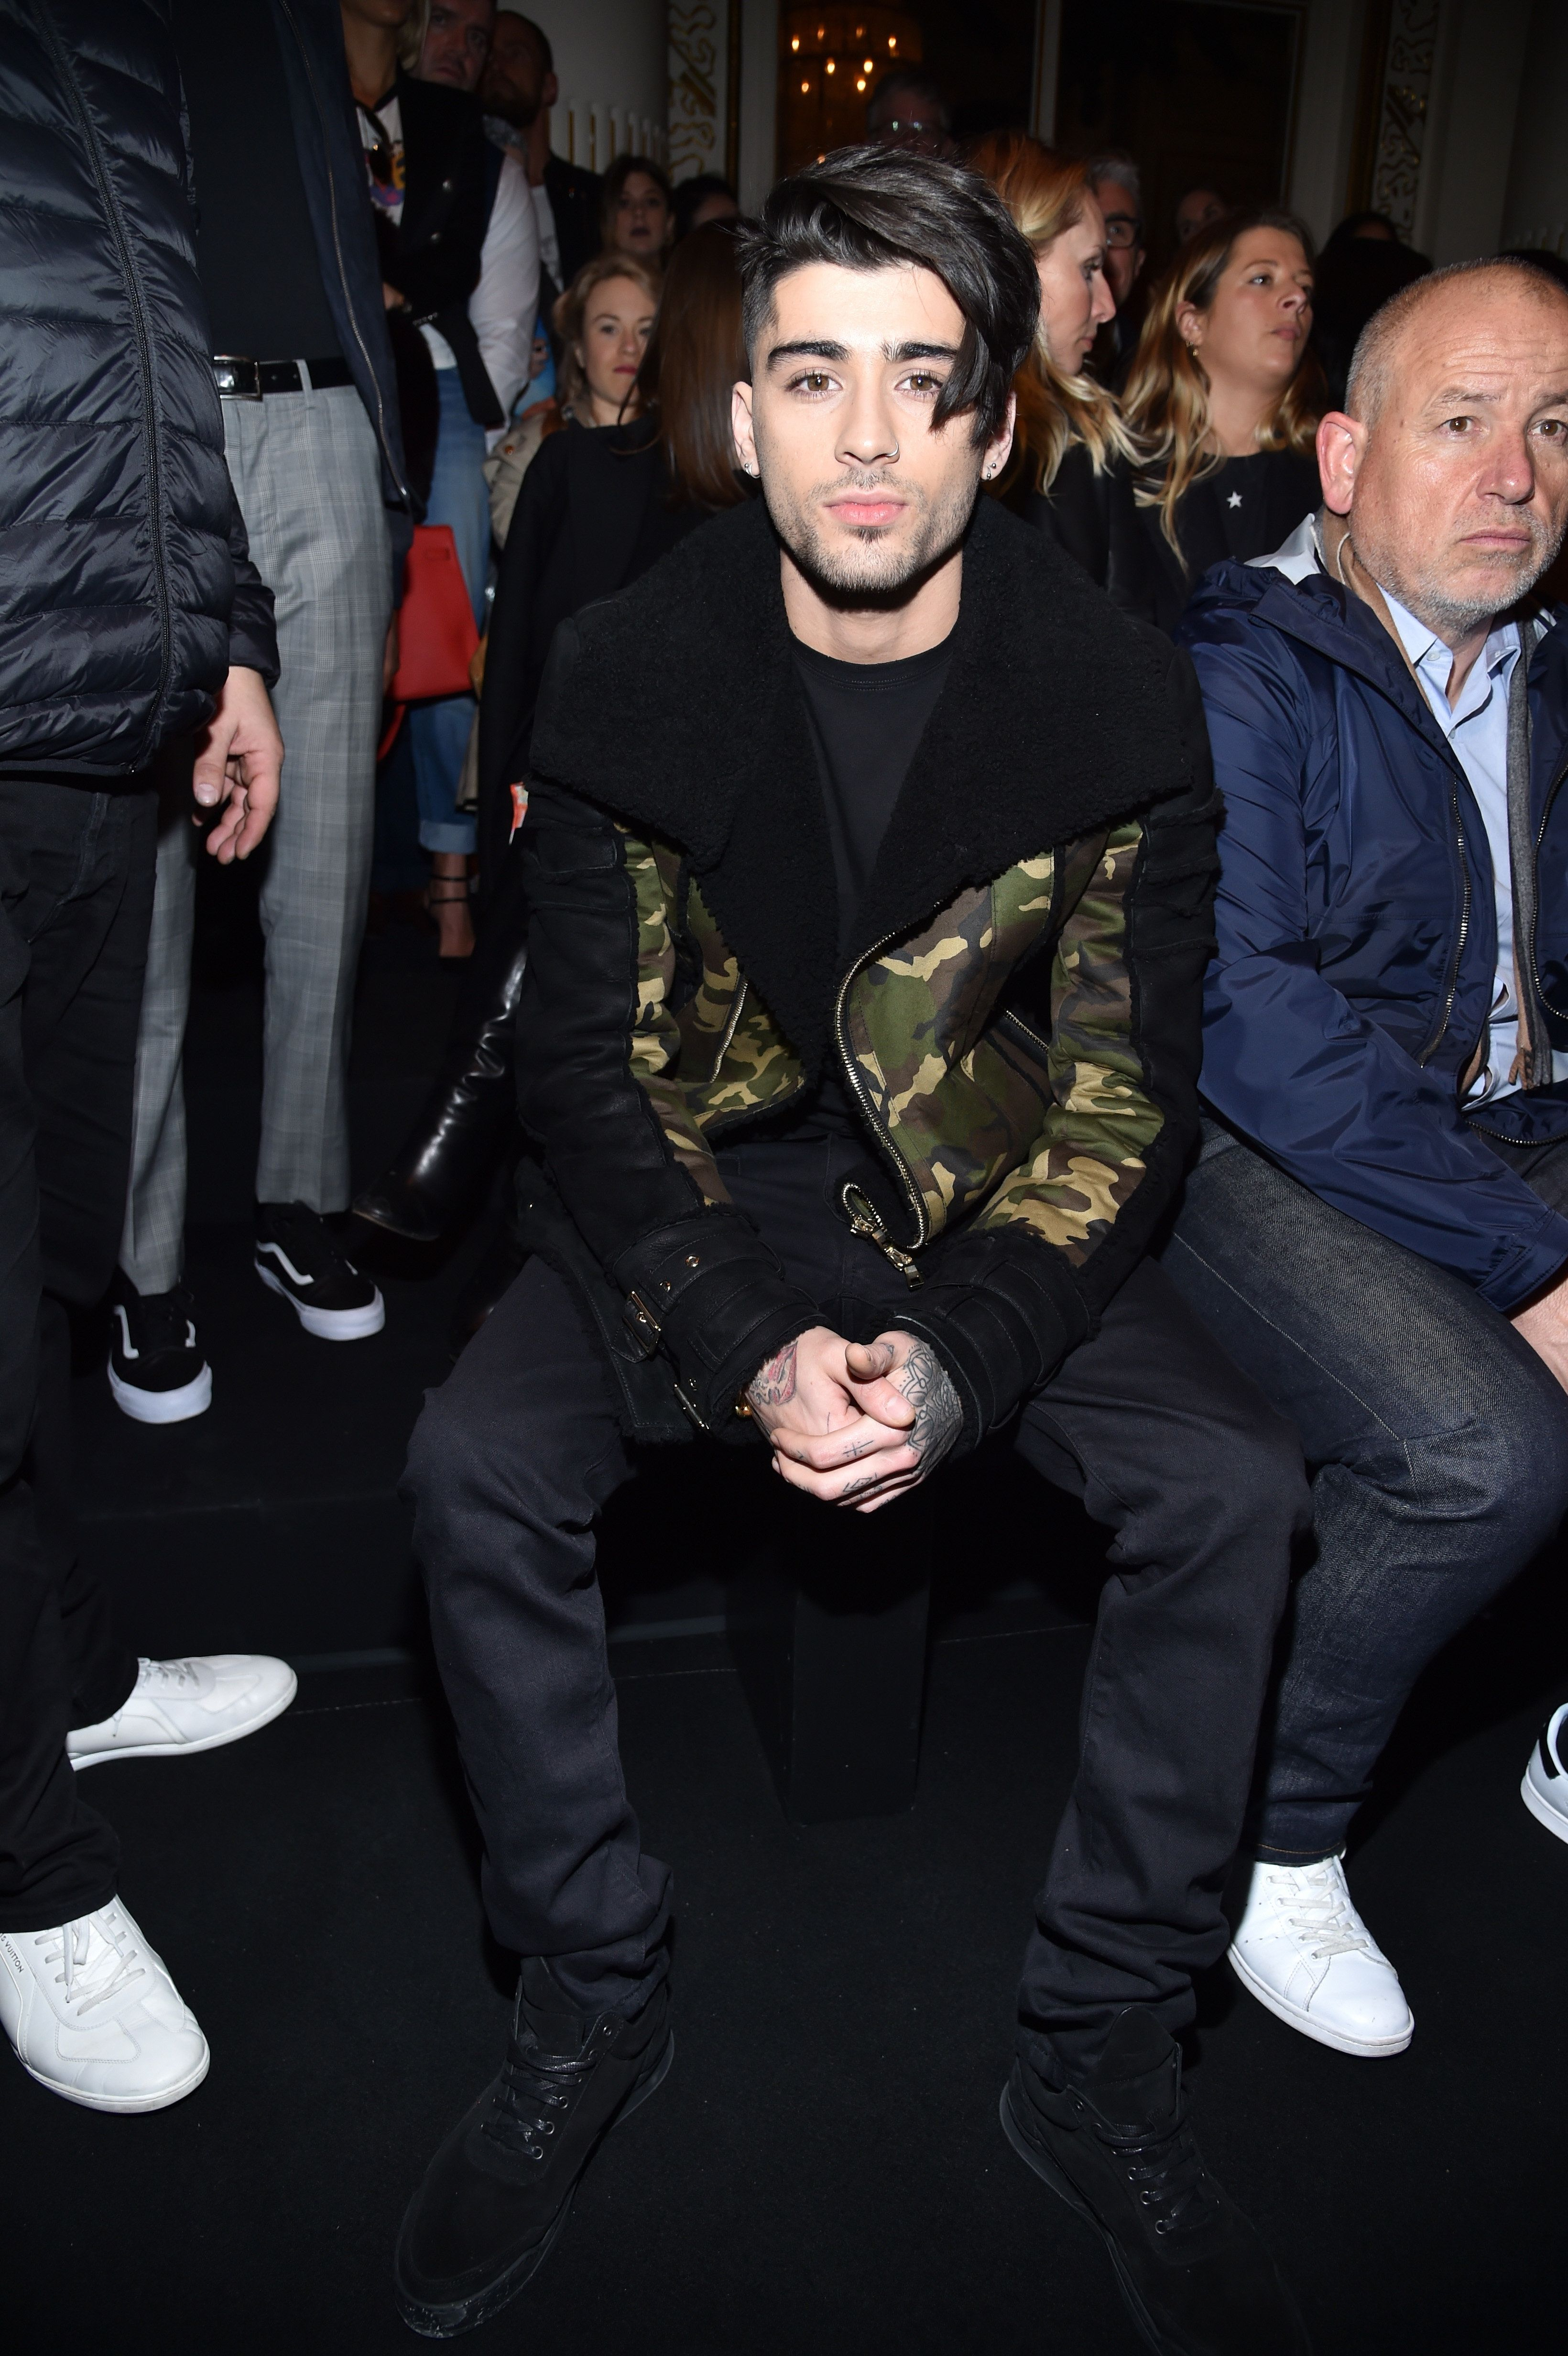 PARIS, FRANCE - MARCH 02:  Zayn Malik attends the Balmain show as part of the Paris Fashion Week Womenswear Fall/Winter 2017/2018 on March 2, 2017 in Paris, France.  (Photo by Pascal Le Segretain/Getty Images)